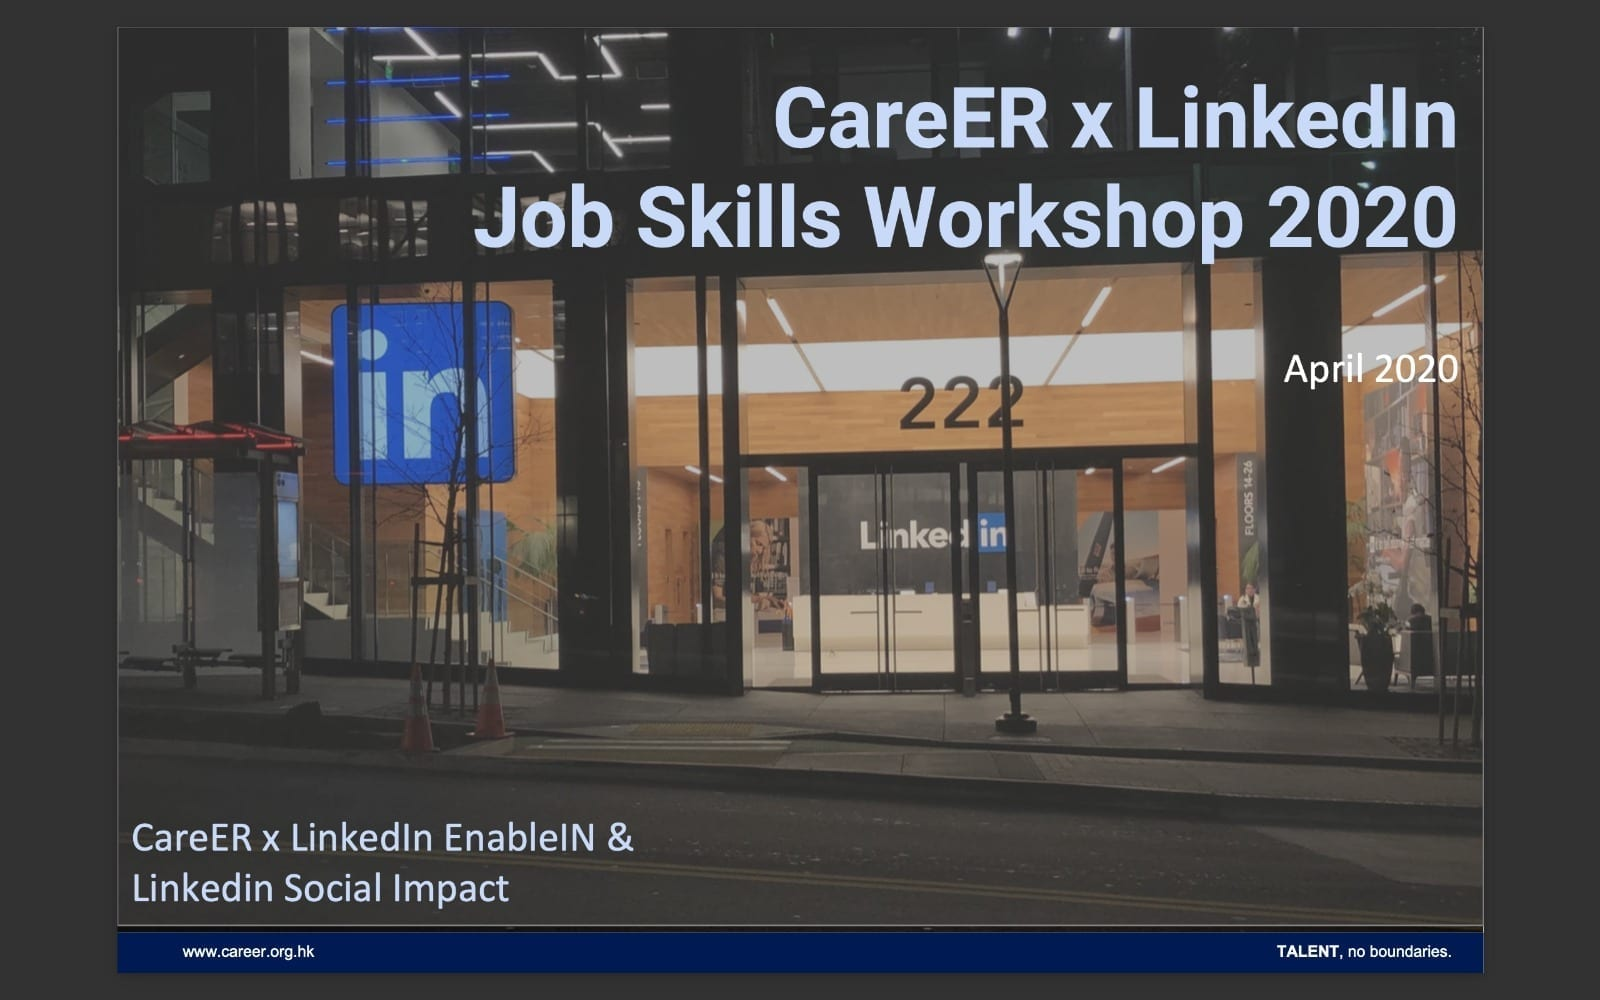 CareER x LinkedIn Job Skills Training Workshop Apr 2020